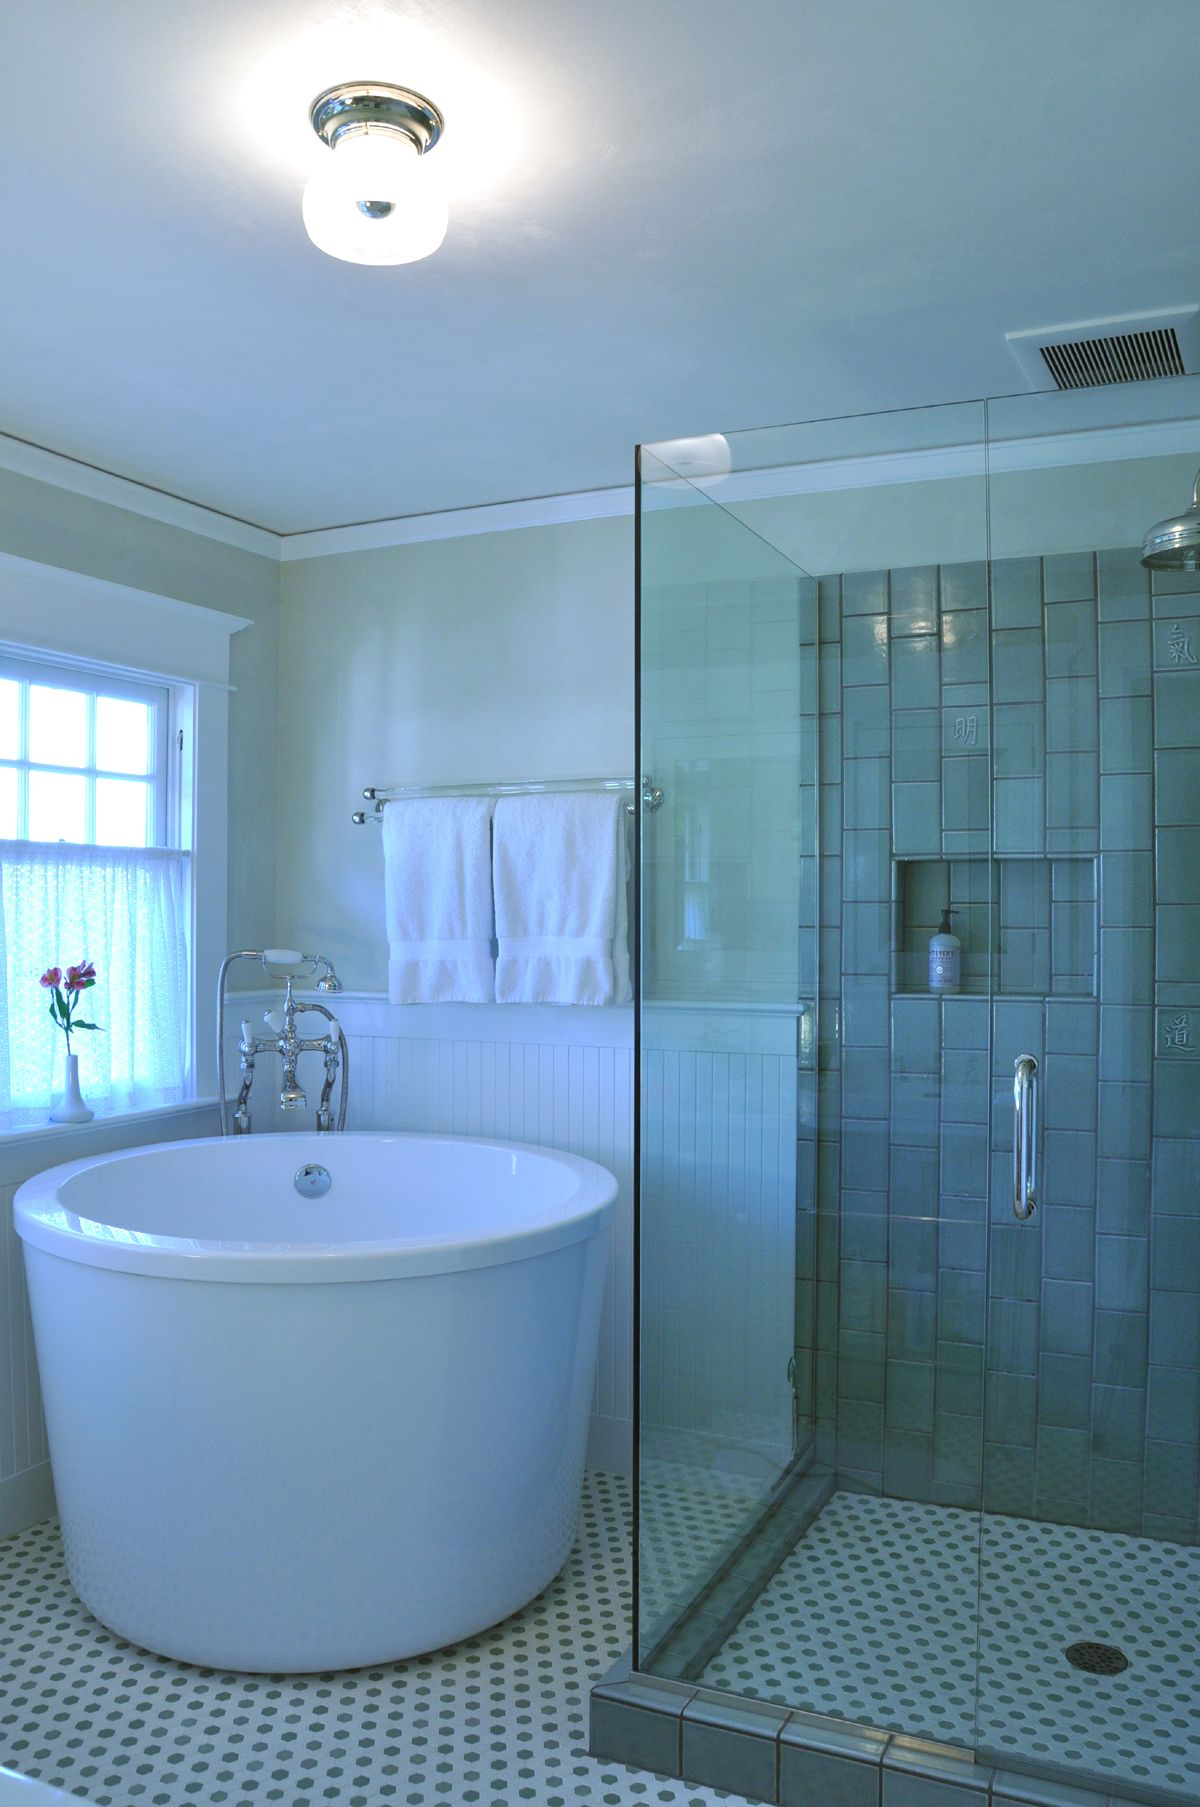 Awesome Japanese Soaking Tub In Master Bathroom For Recent Remodel Beutiful Home Inspiration Semekurdistantinfo